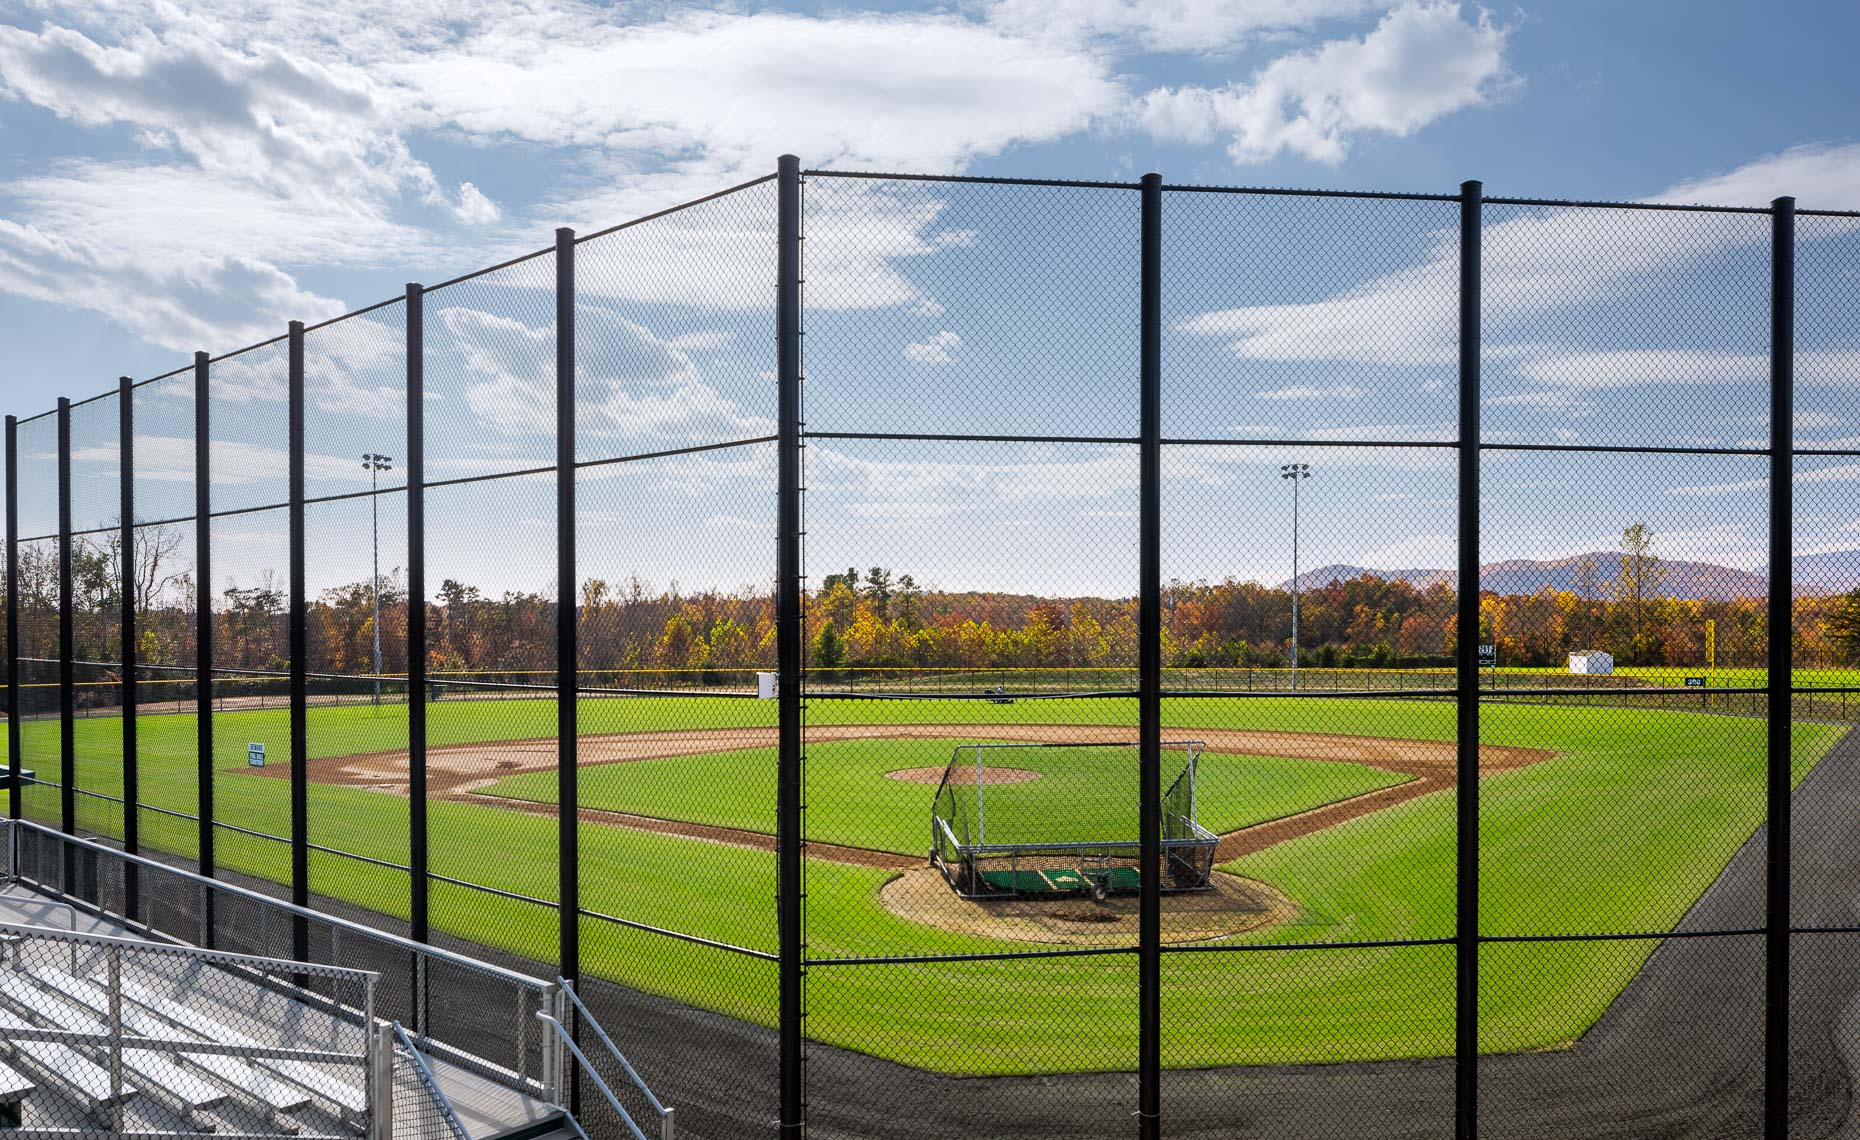 Virginia Hamrick Photography - Baseball Field - Athletics -Academia